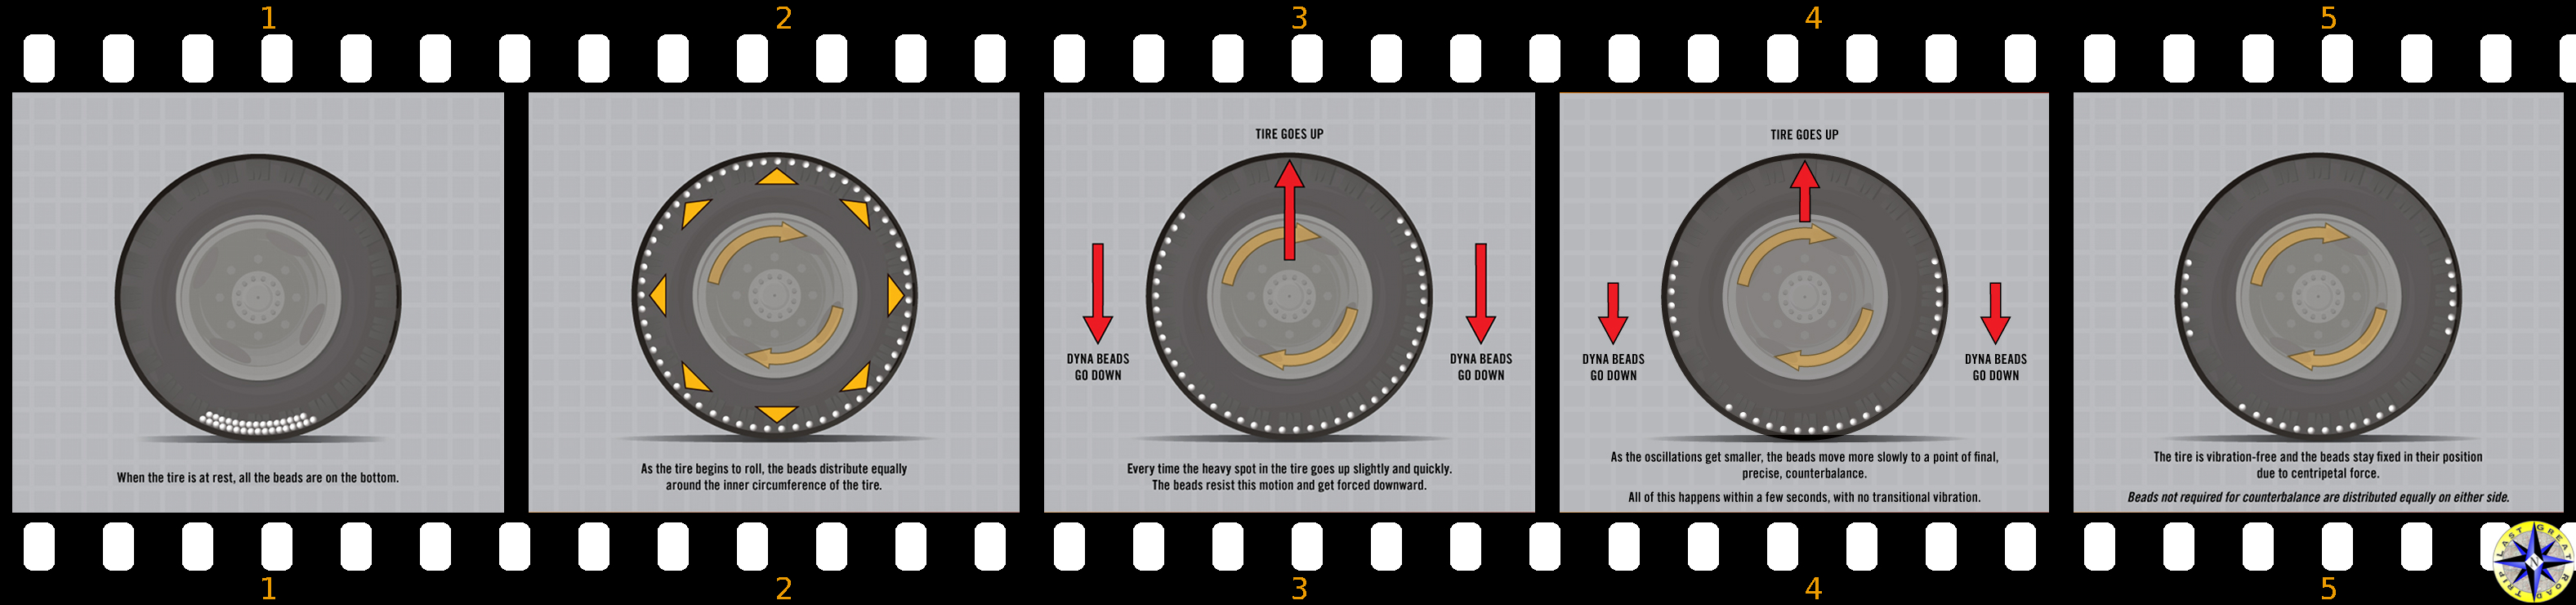 how centrifugal force works to balance tire